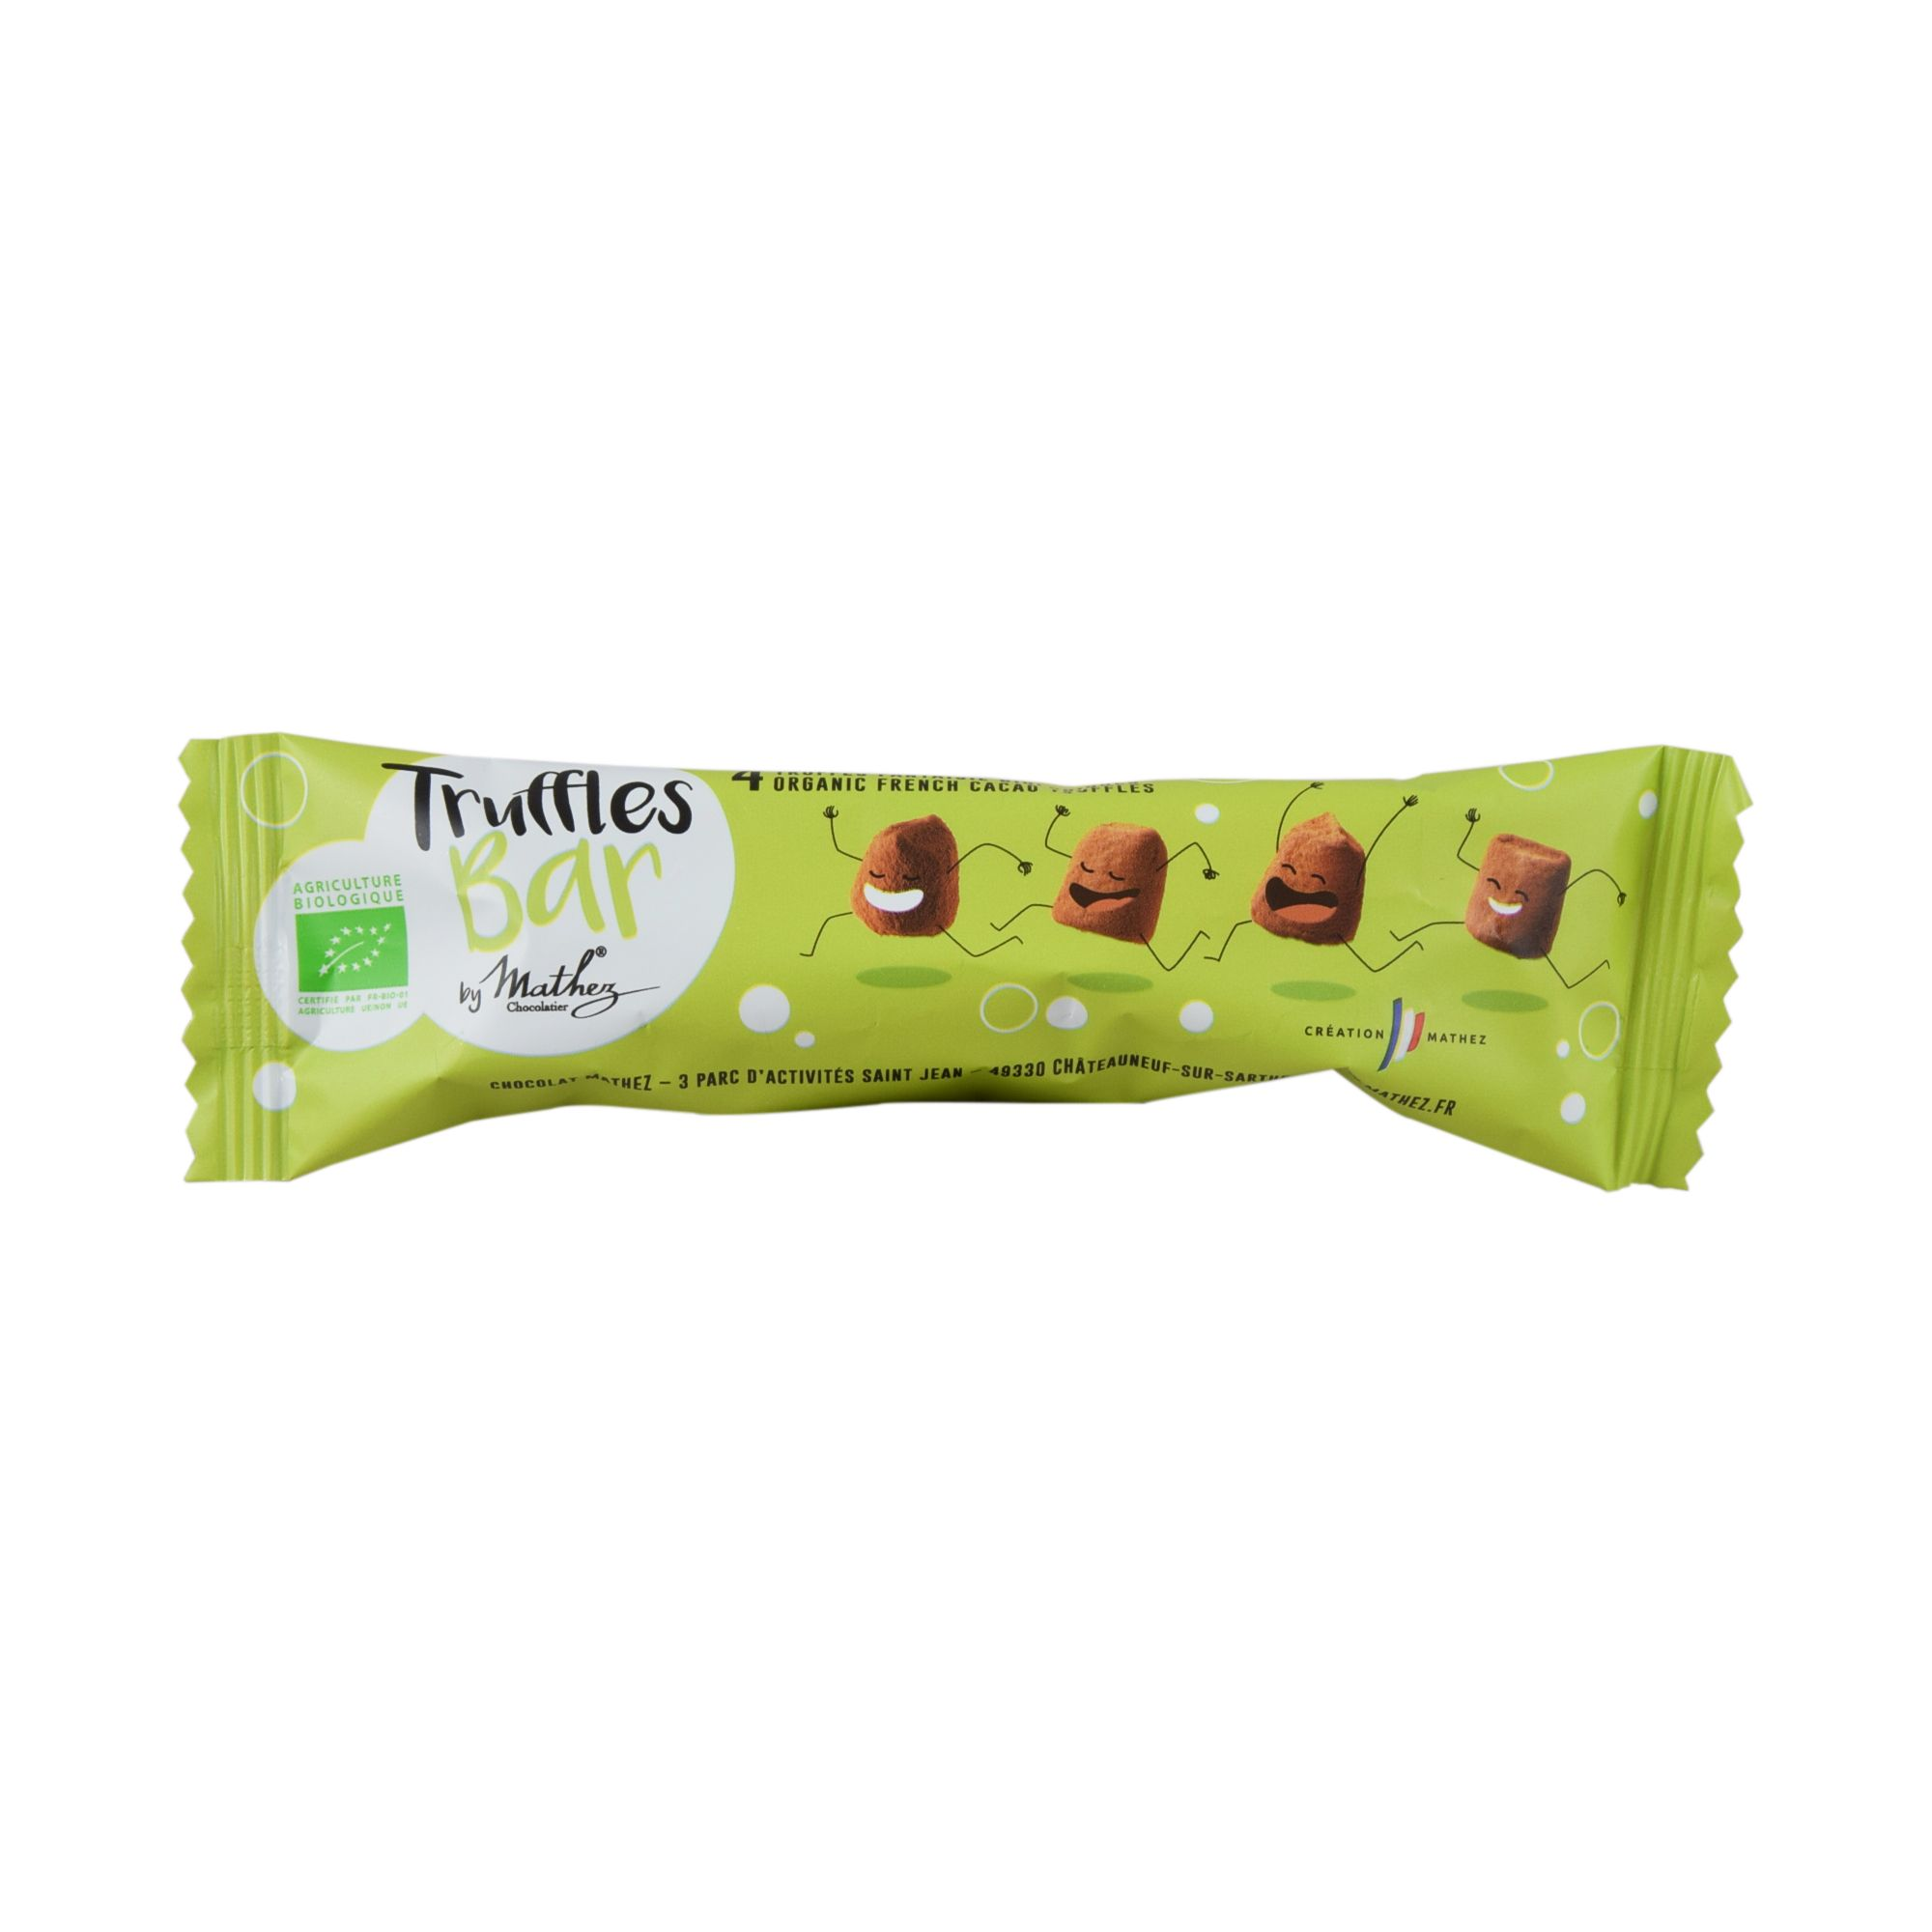 T03.03 TRUFFLE BAR BIO